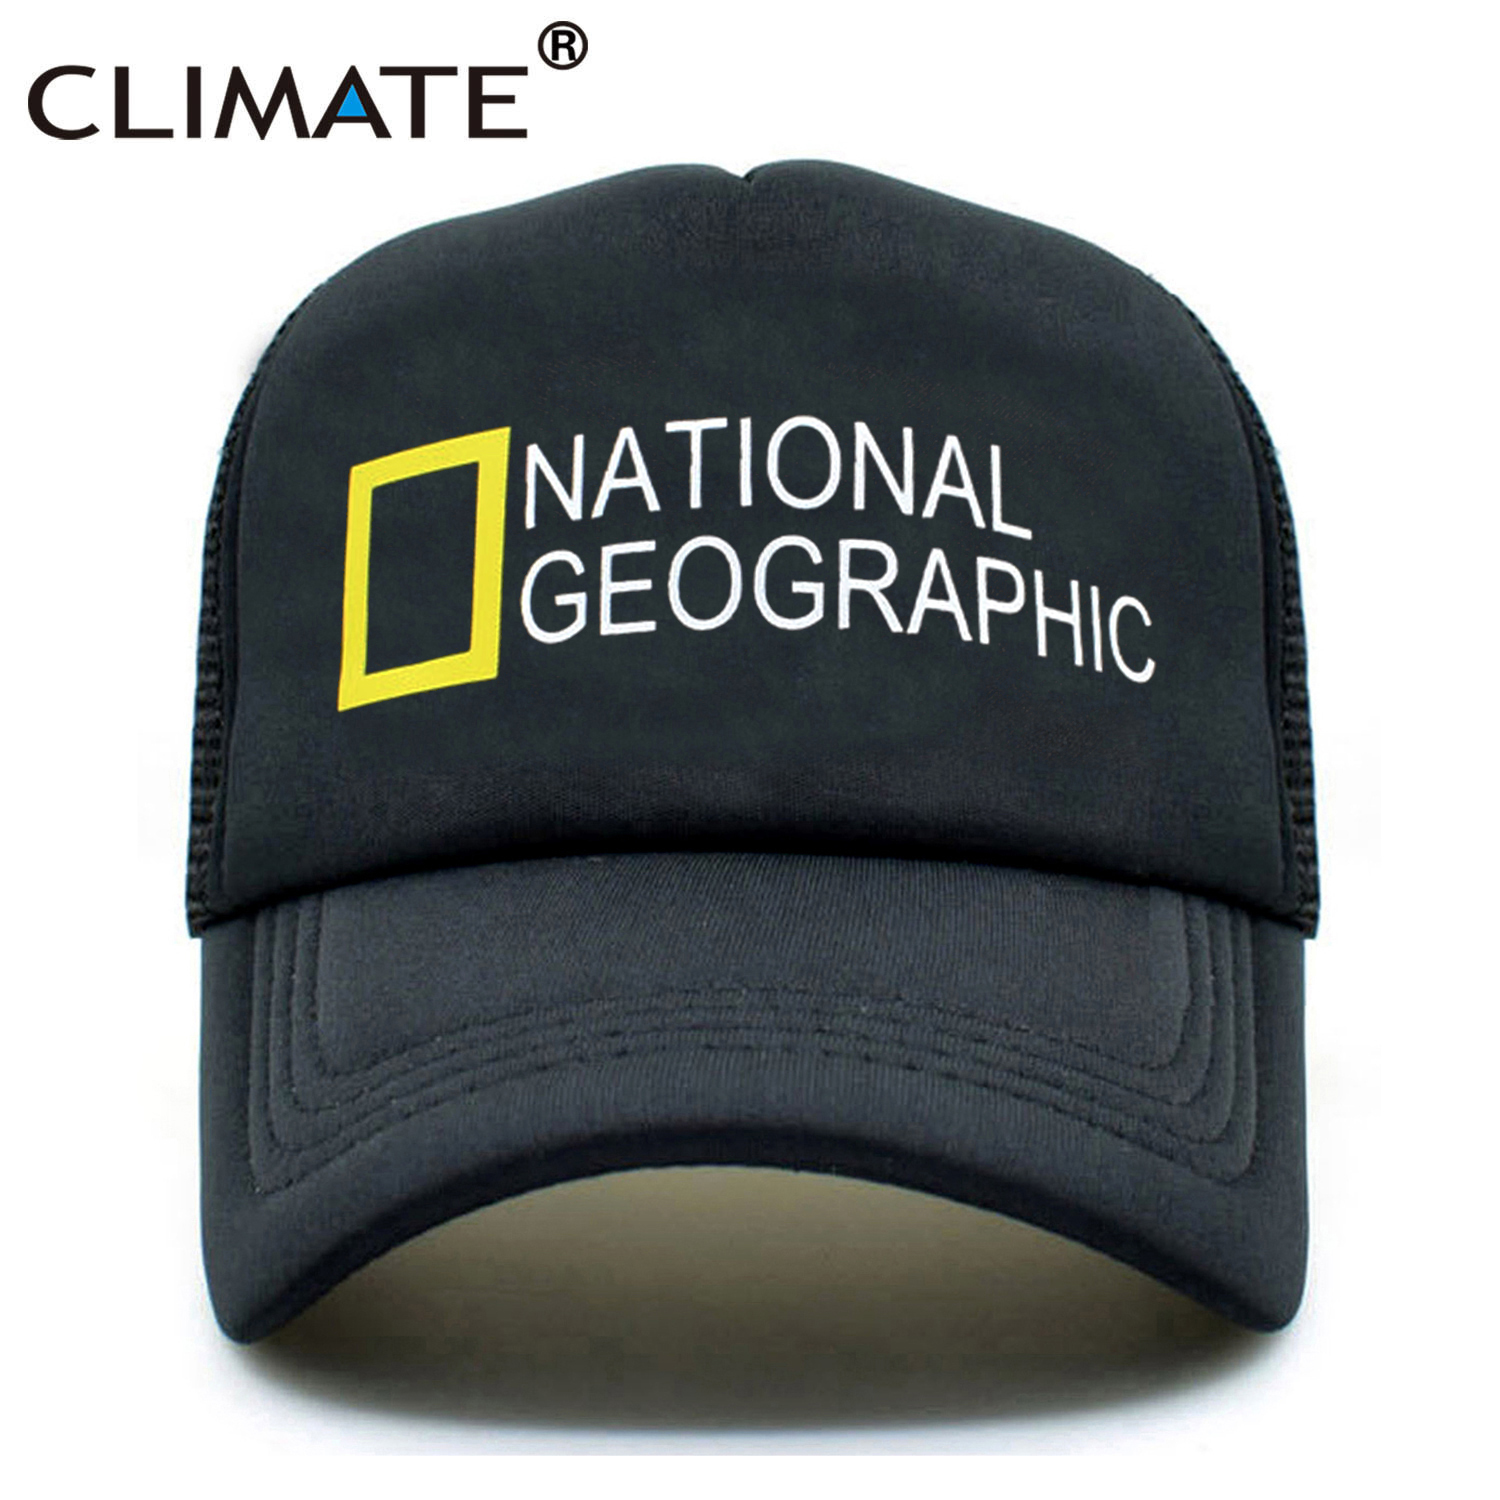 KLIMAAT Heren New Trucker Caps National Geographic Channel Hot Summer - Kledingaccessoires